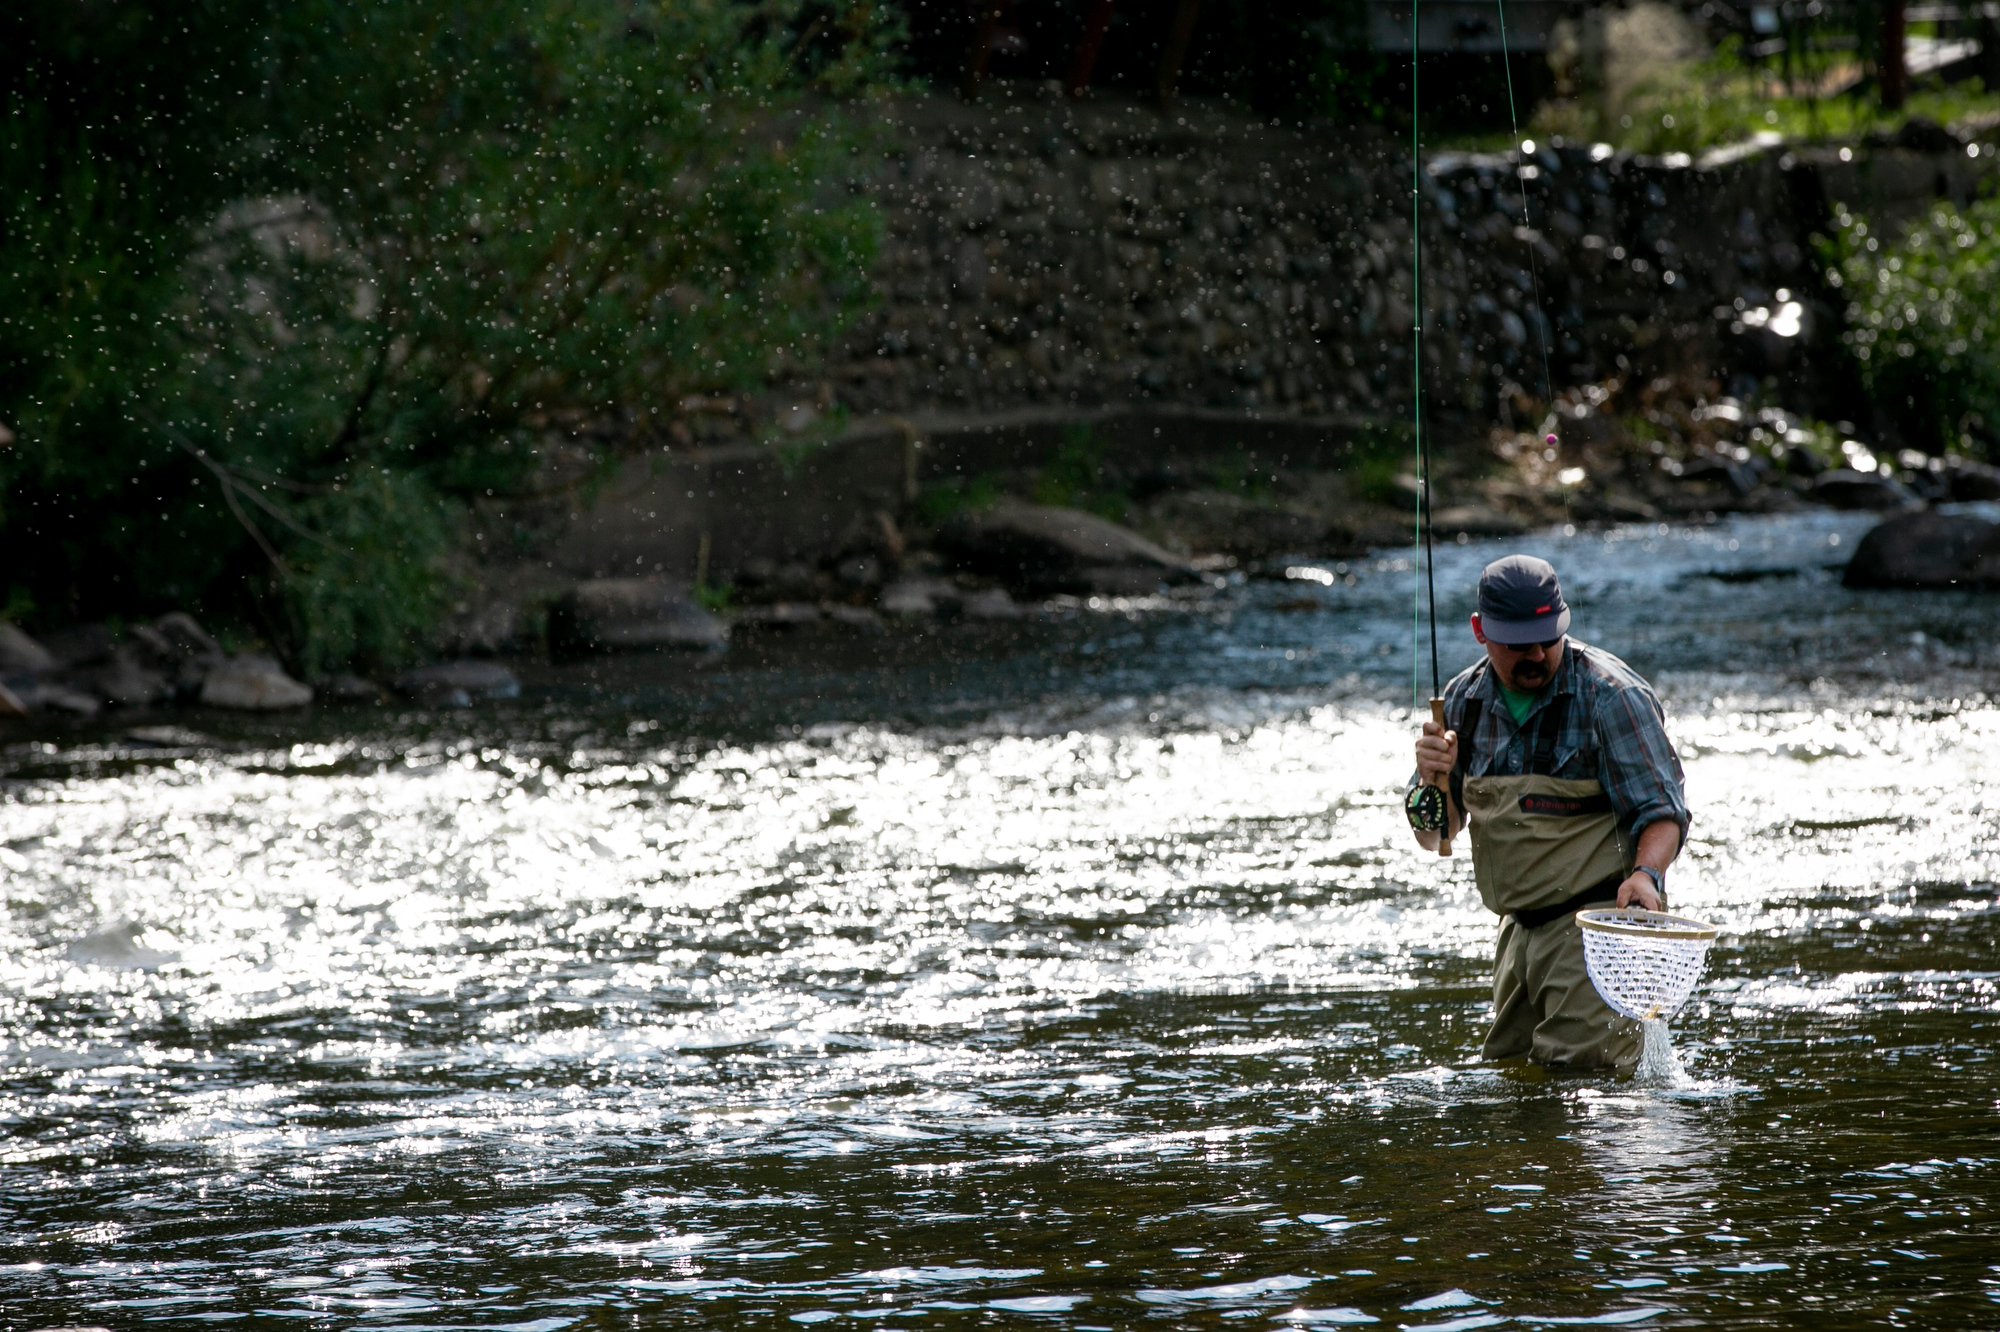 STEAMBOAT SPRINGS YAMPA RIVER SUMMER TOURISM